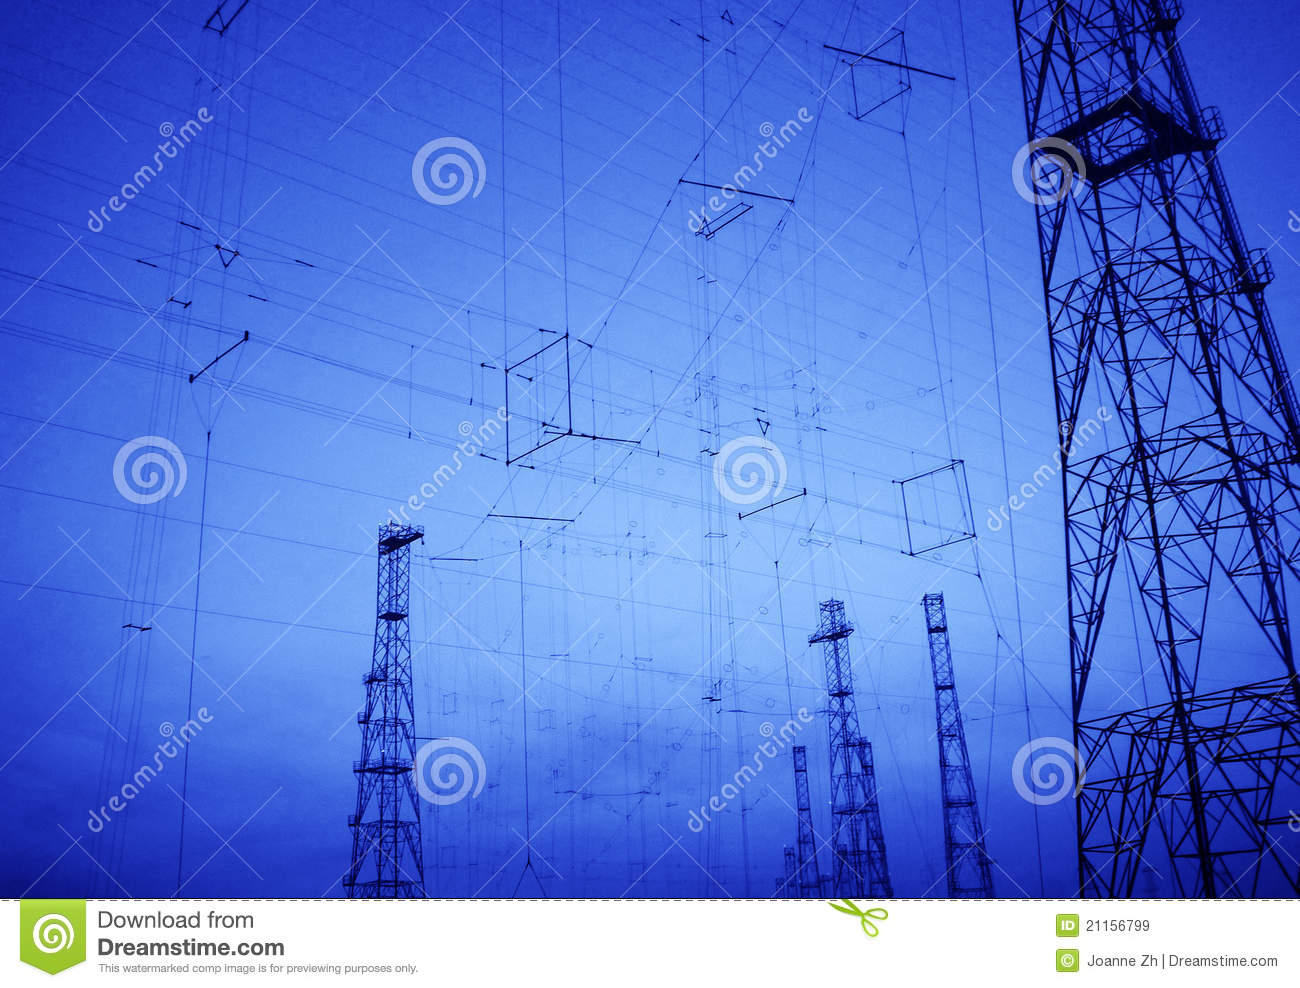 Background hi tech telecommunication technology